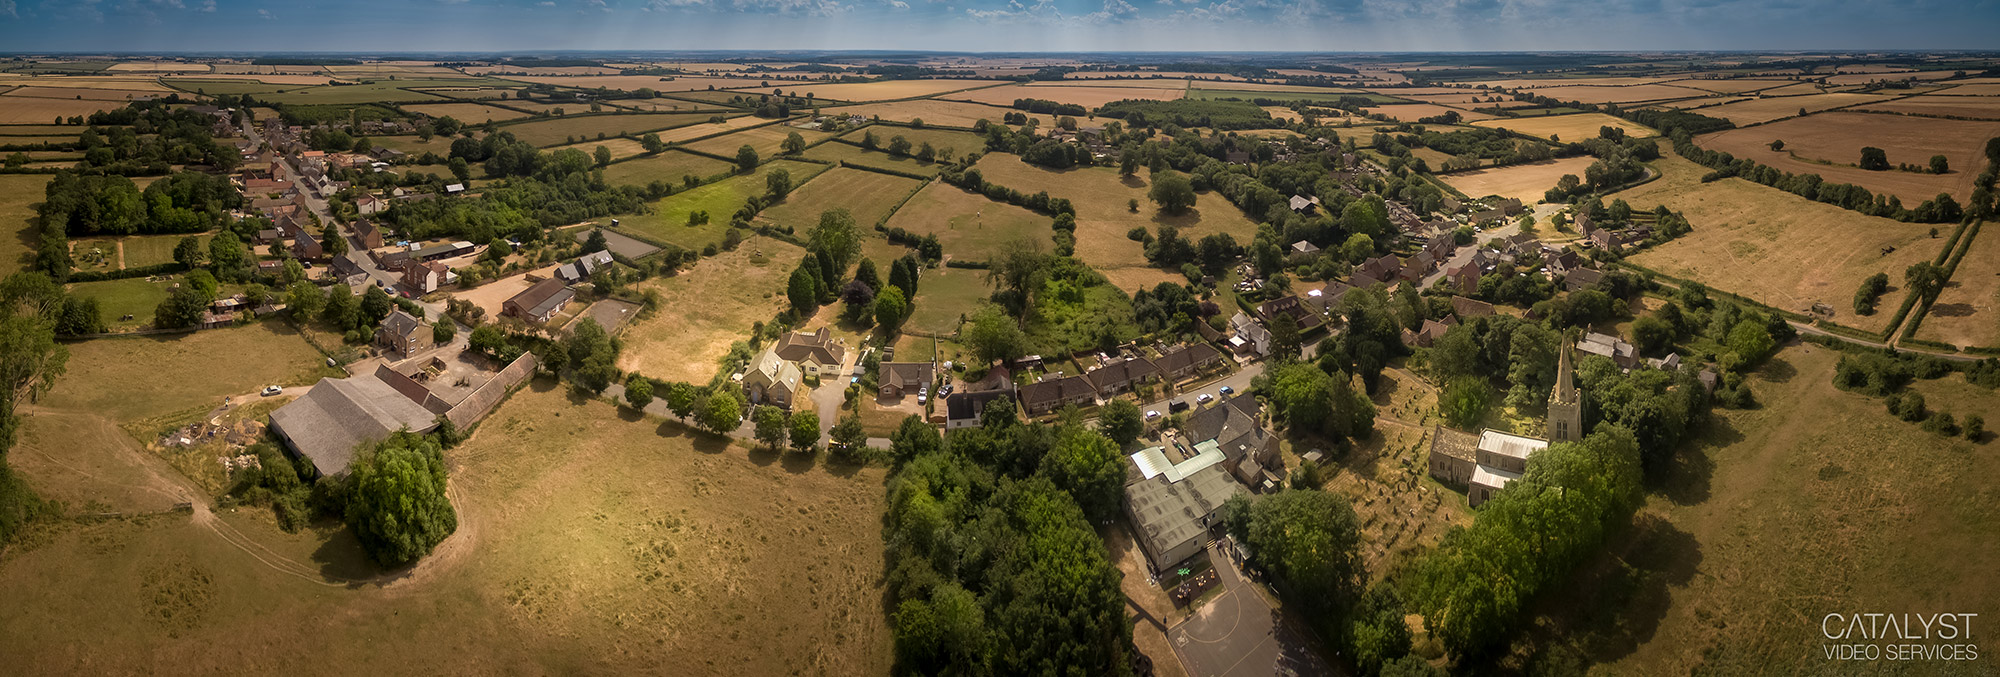 Aerial panorama of village in Cambridgeshire